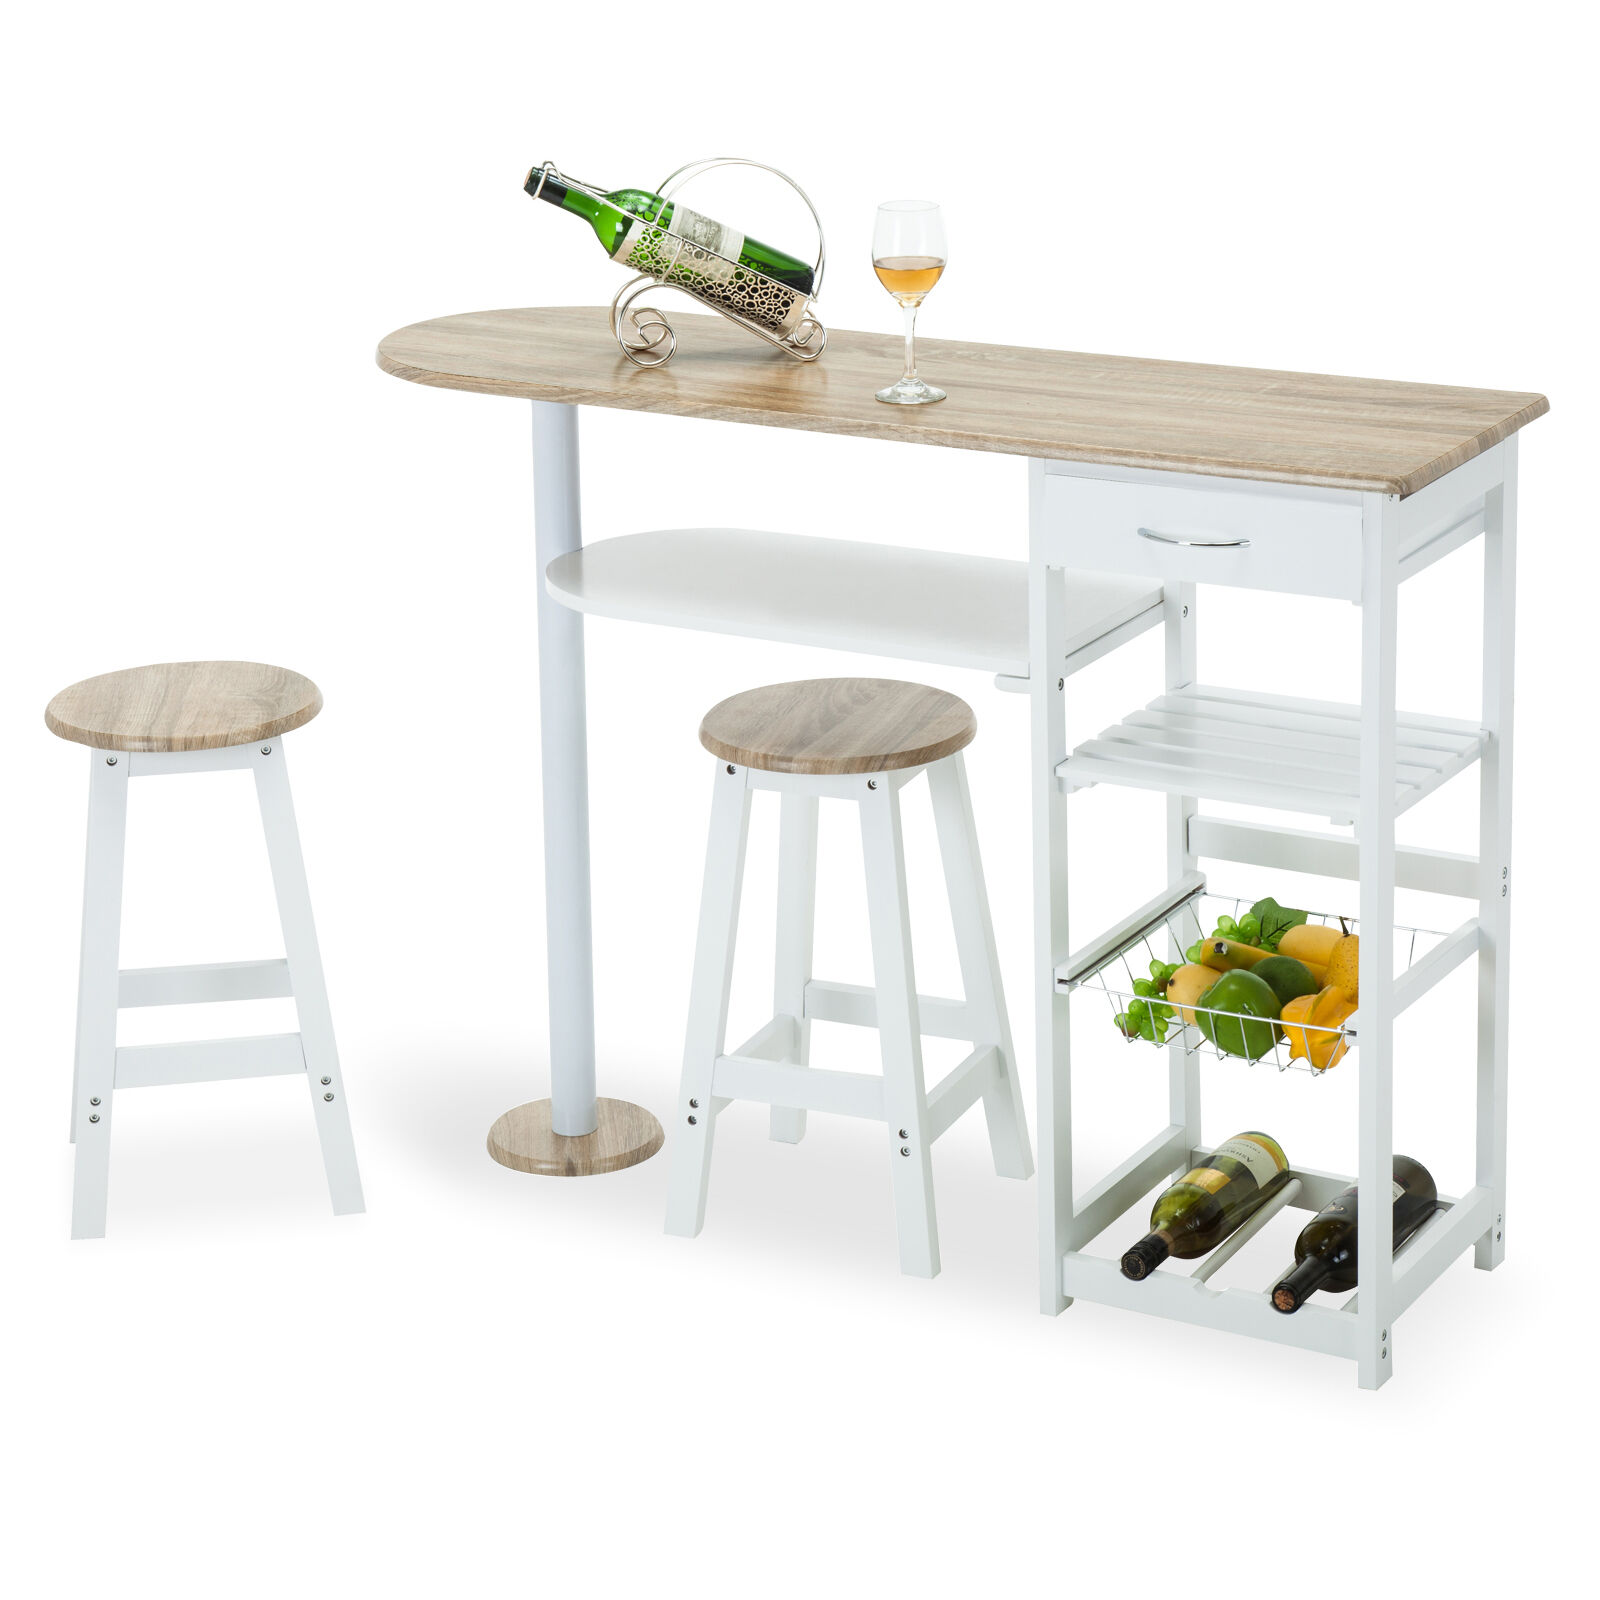 Oak White Kitchen Island Cart Trolley Dining Table Storage 2 Bar